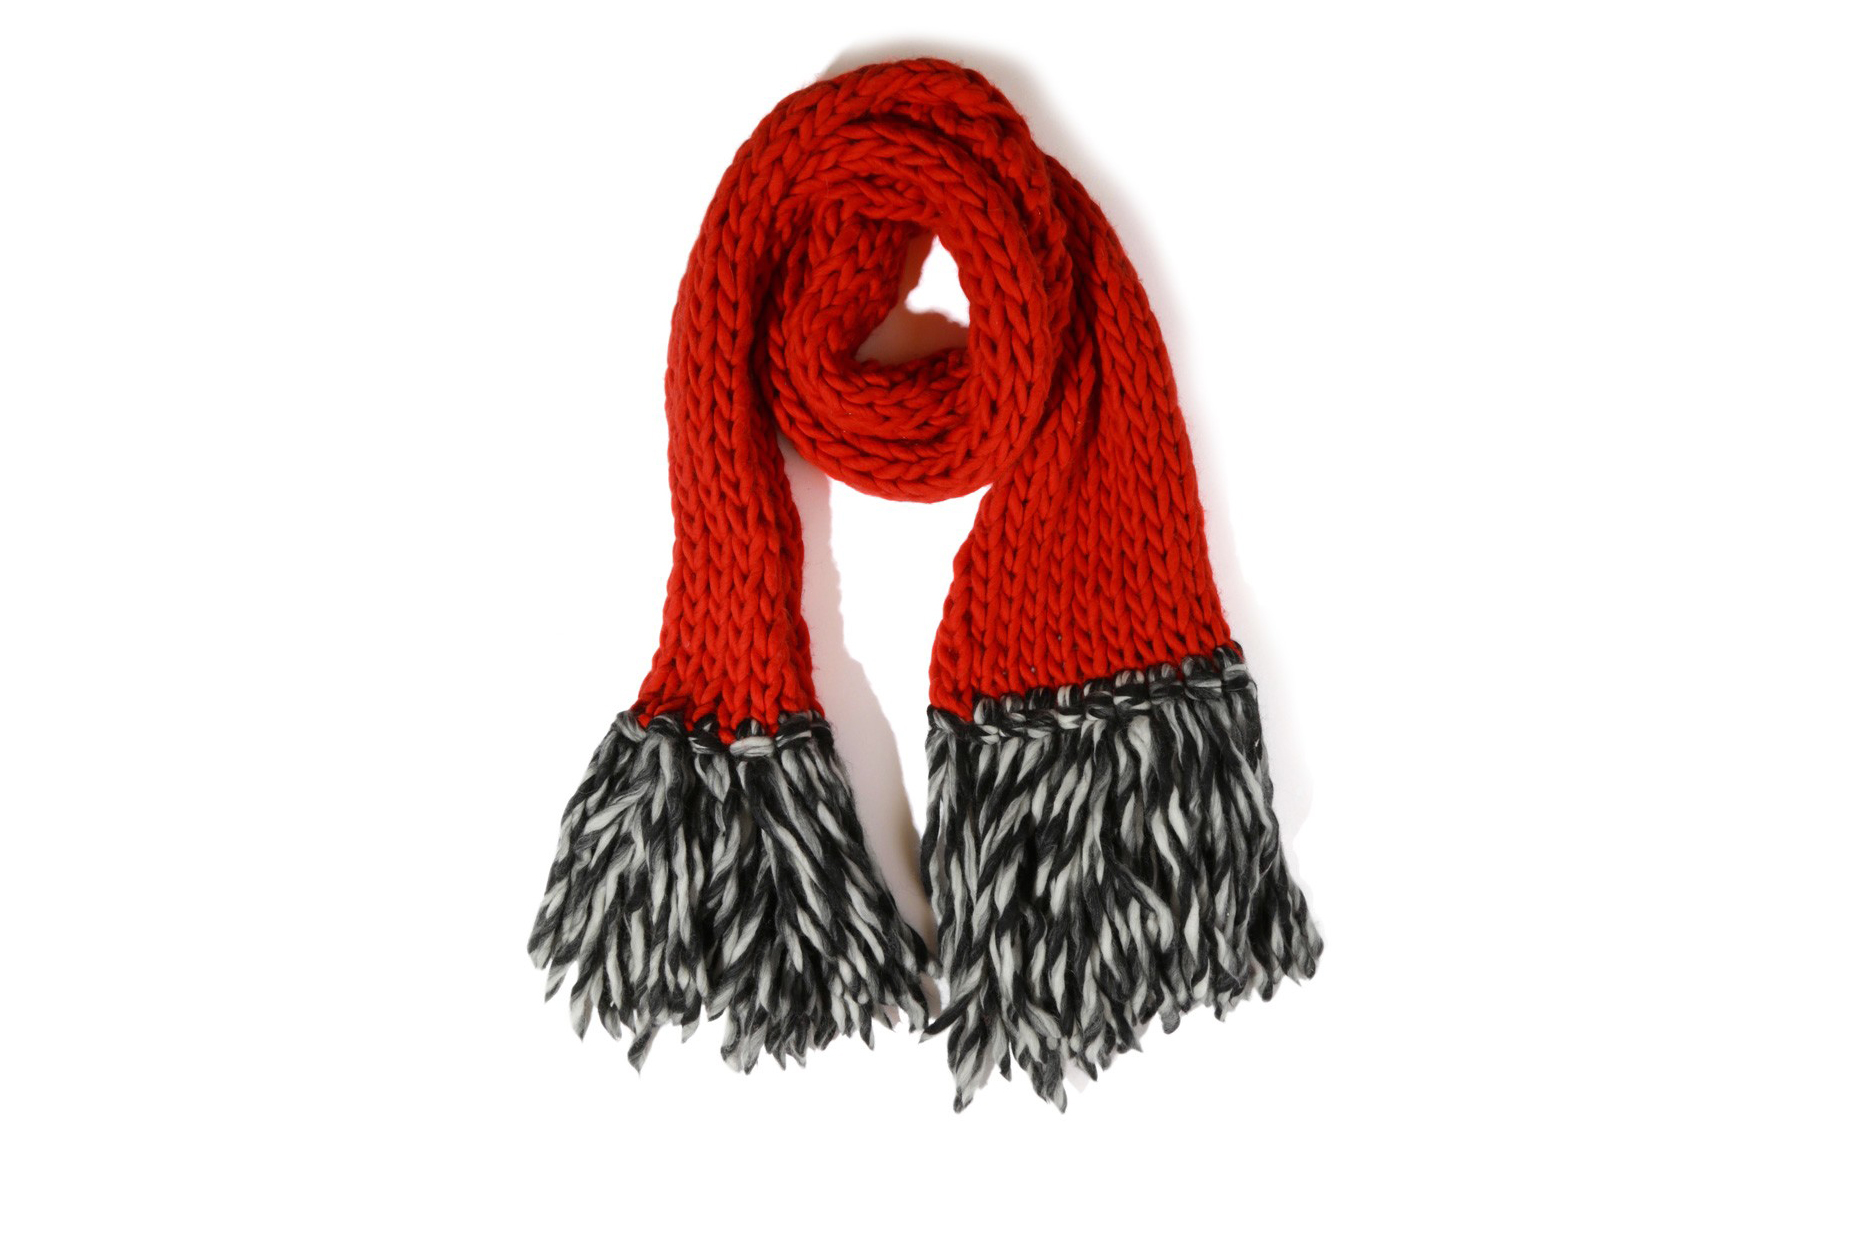 7 Cozy Knitting Accessories to Warm Up Your Winter